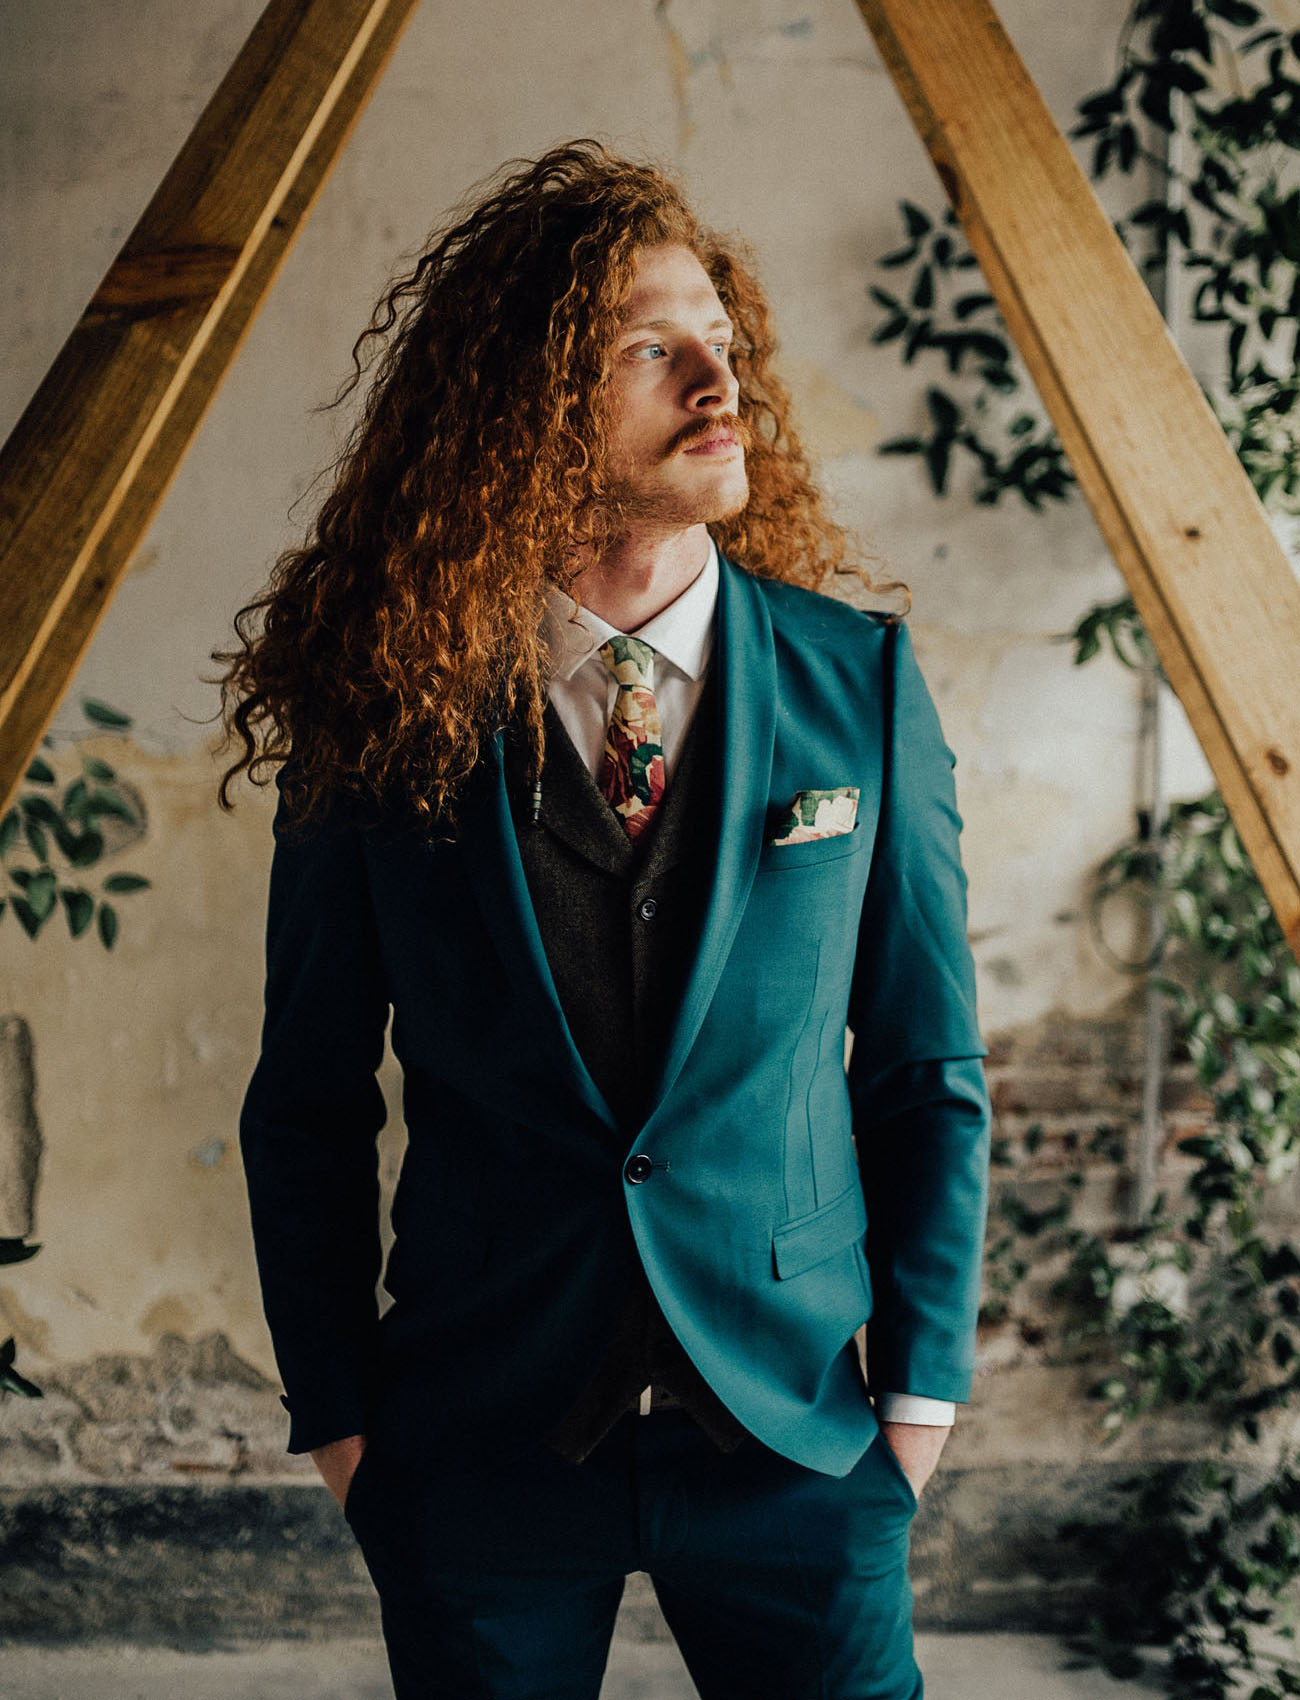 teal groom suit